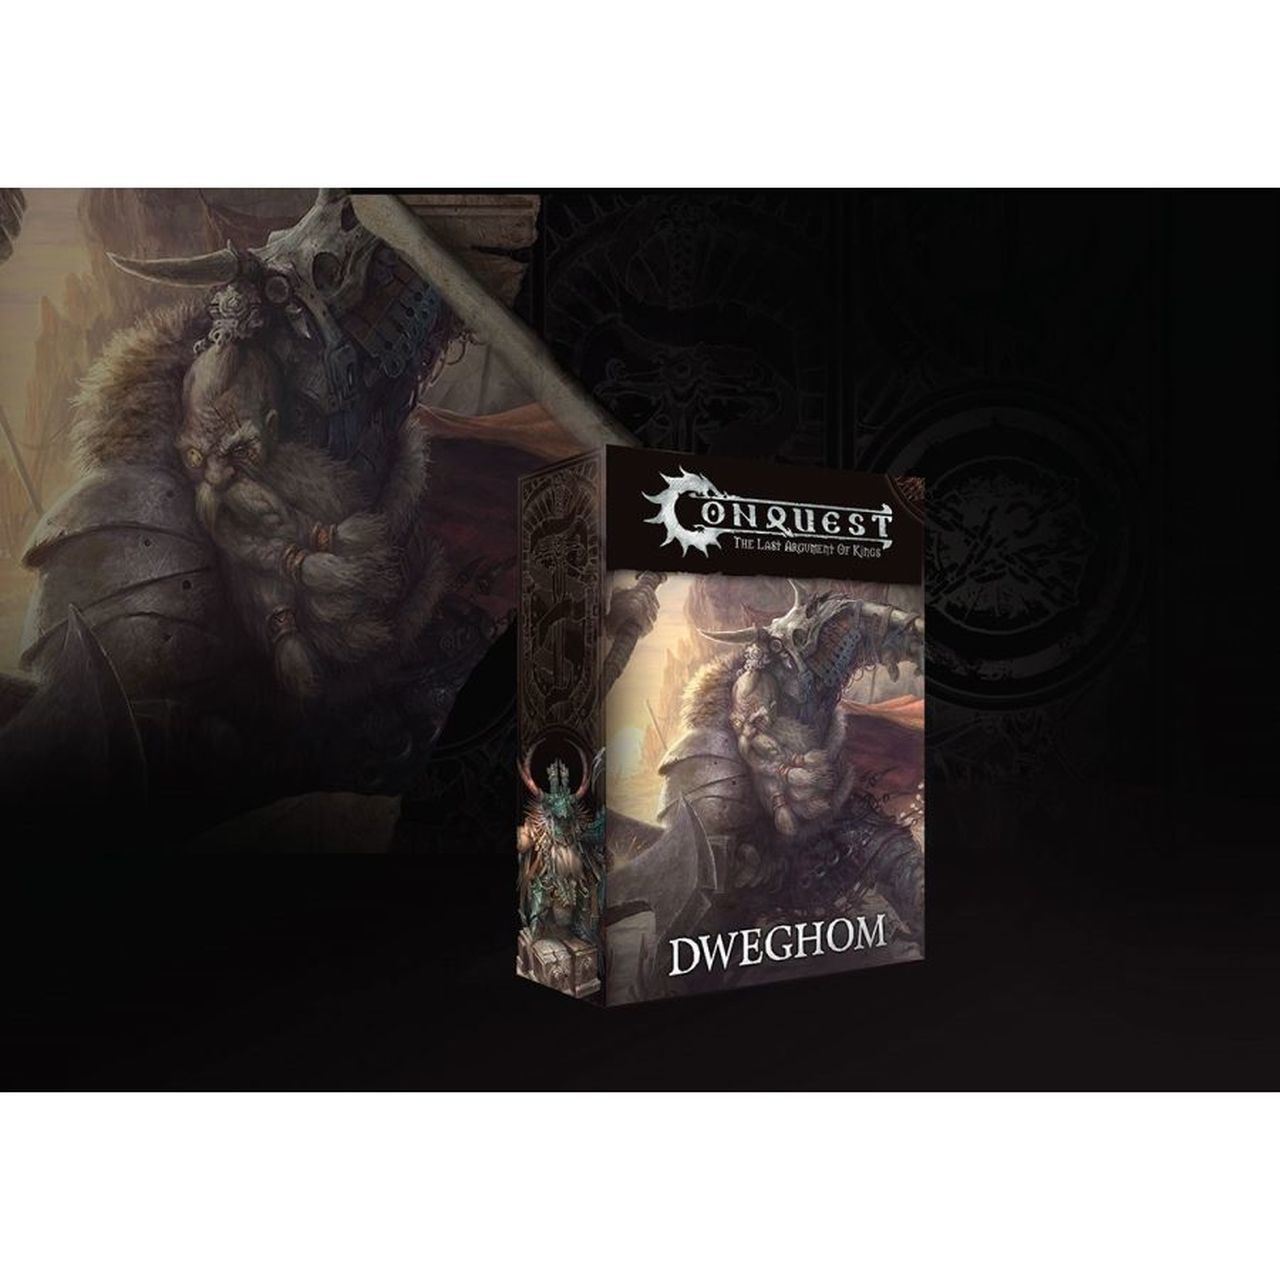 Conquest, Dweghom - Army Card Sets (PBW8007)